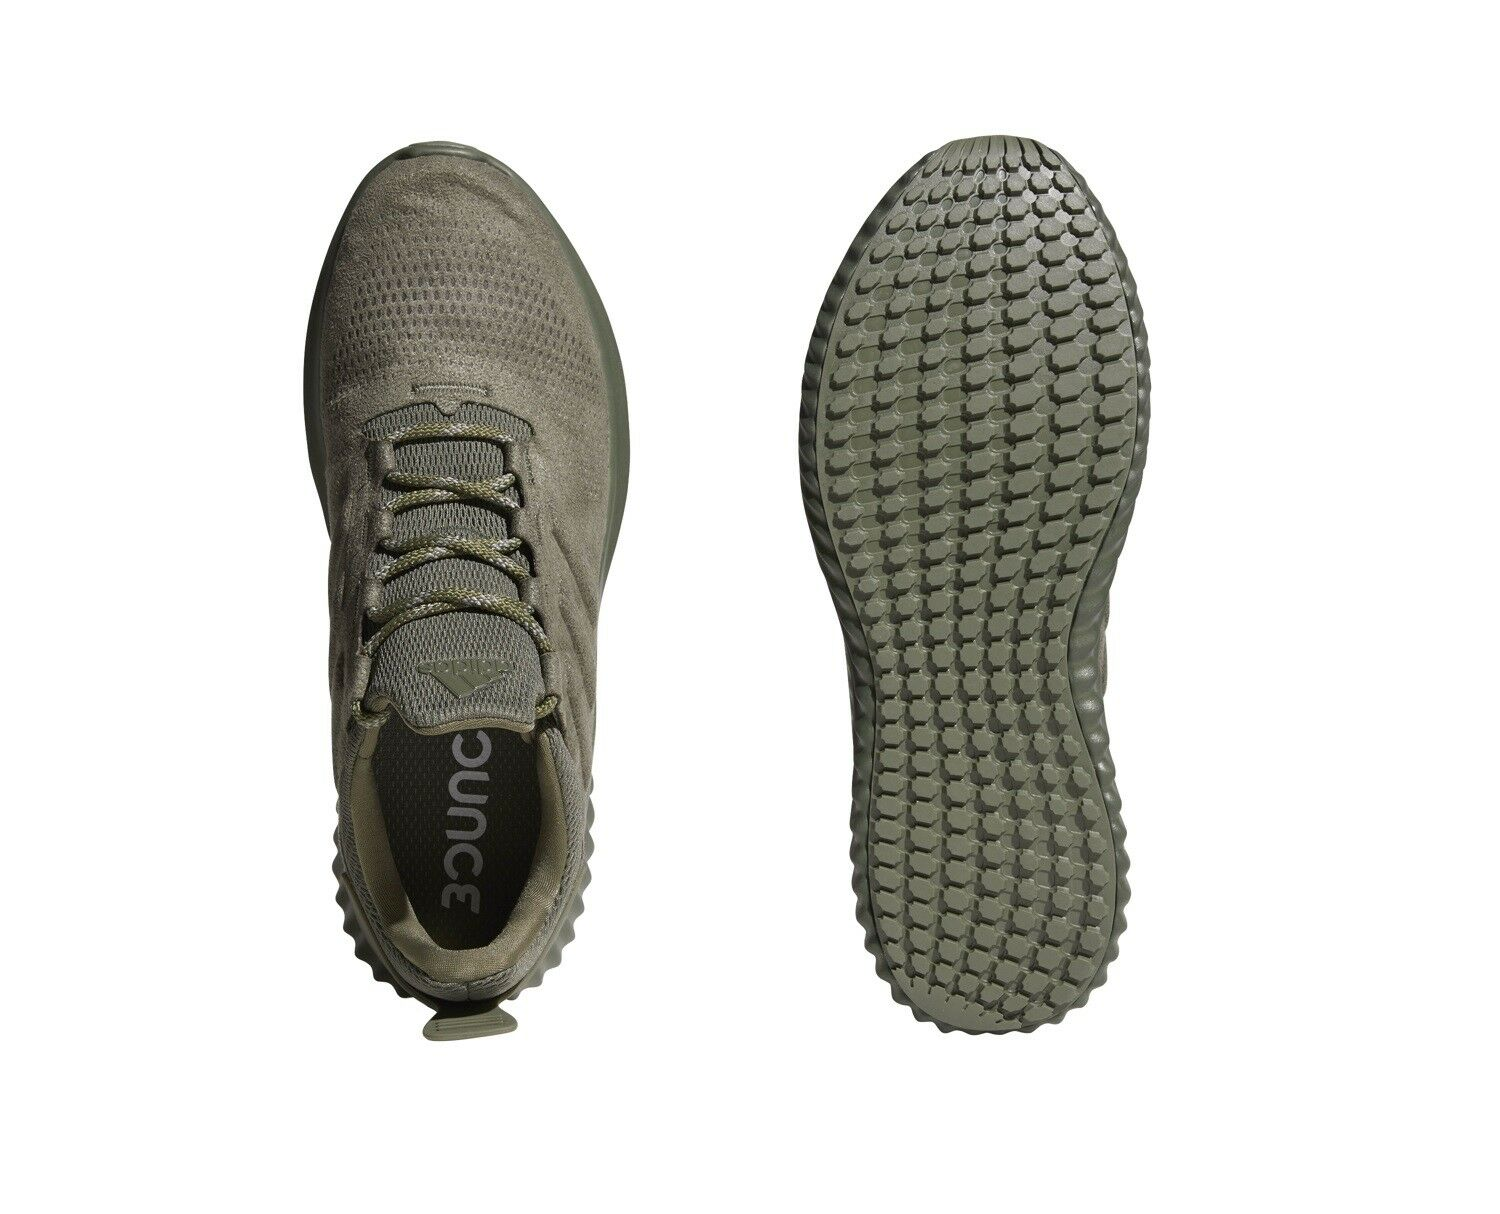 9f96578ceec6 adidas Alphabounce CR M Cg4572 Olive Green DS Size 9 for sale online ...